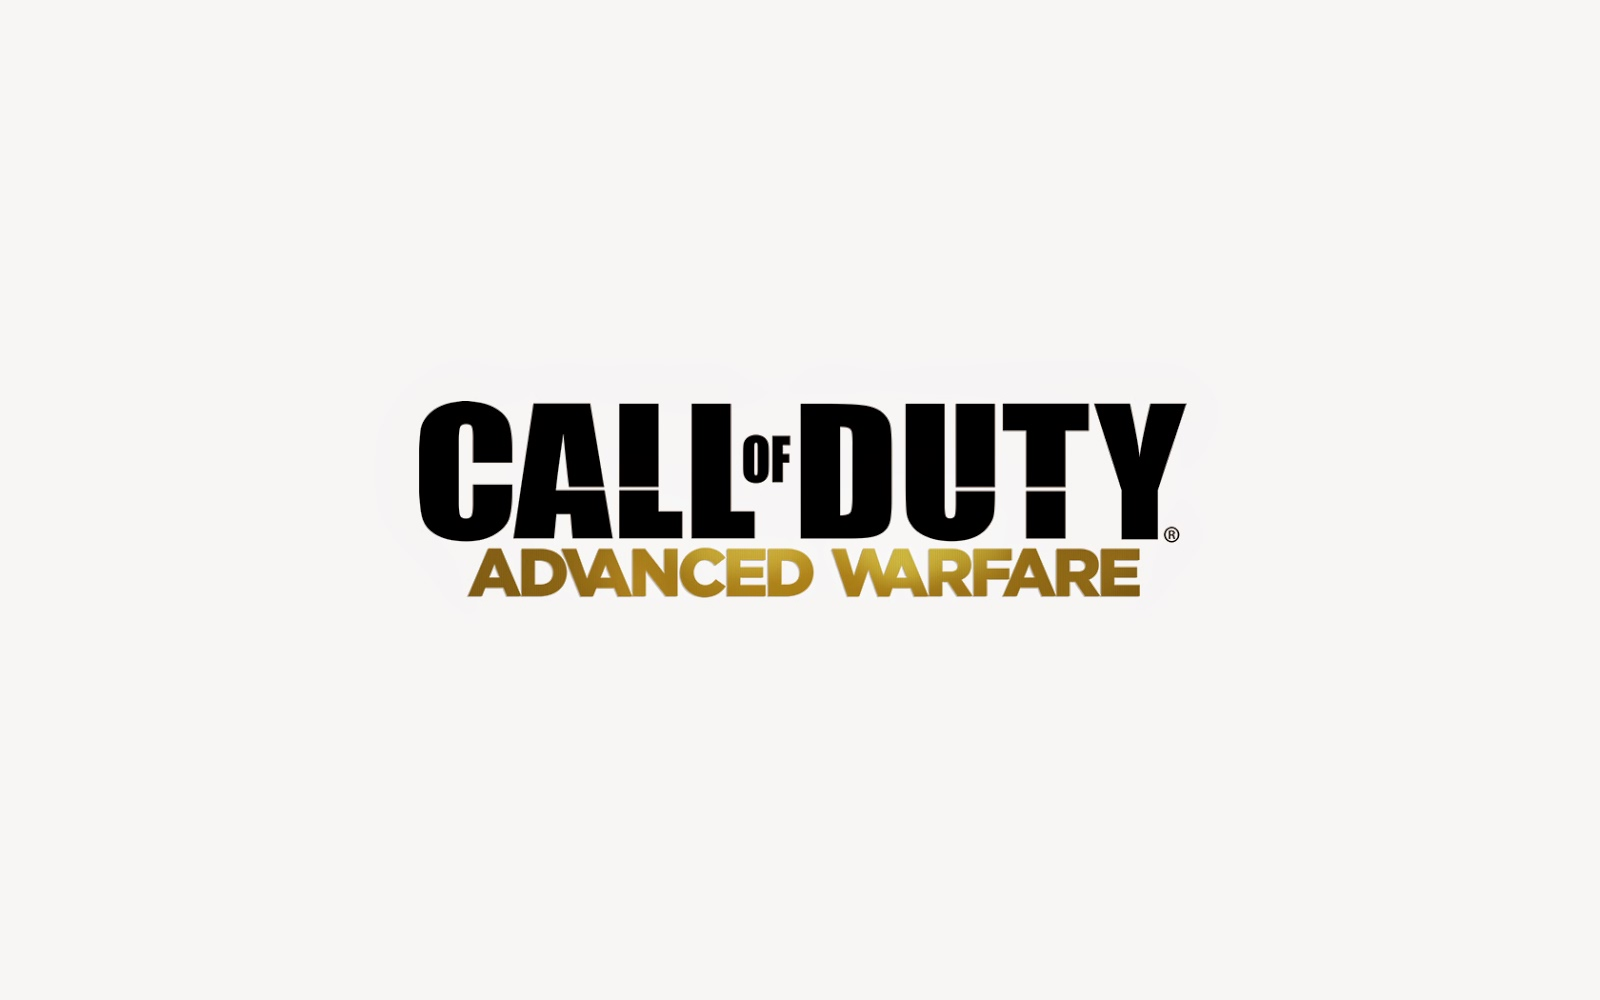 Call of duty advanced warfare logo wallpaper